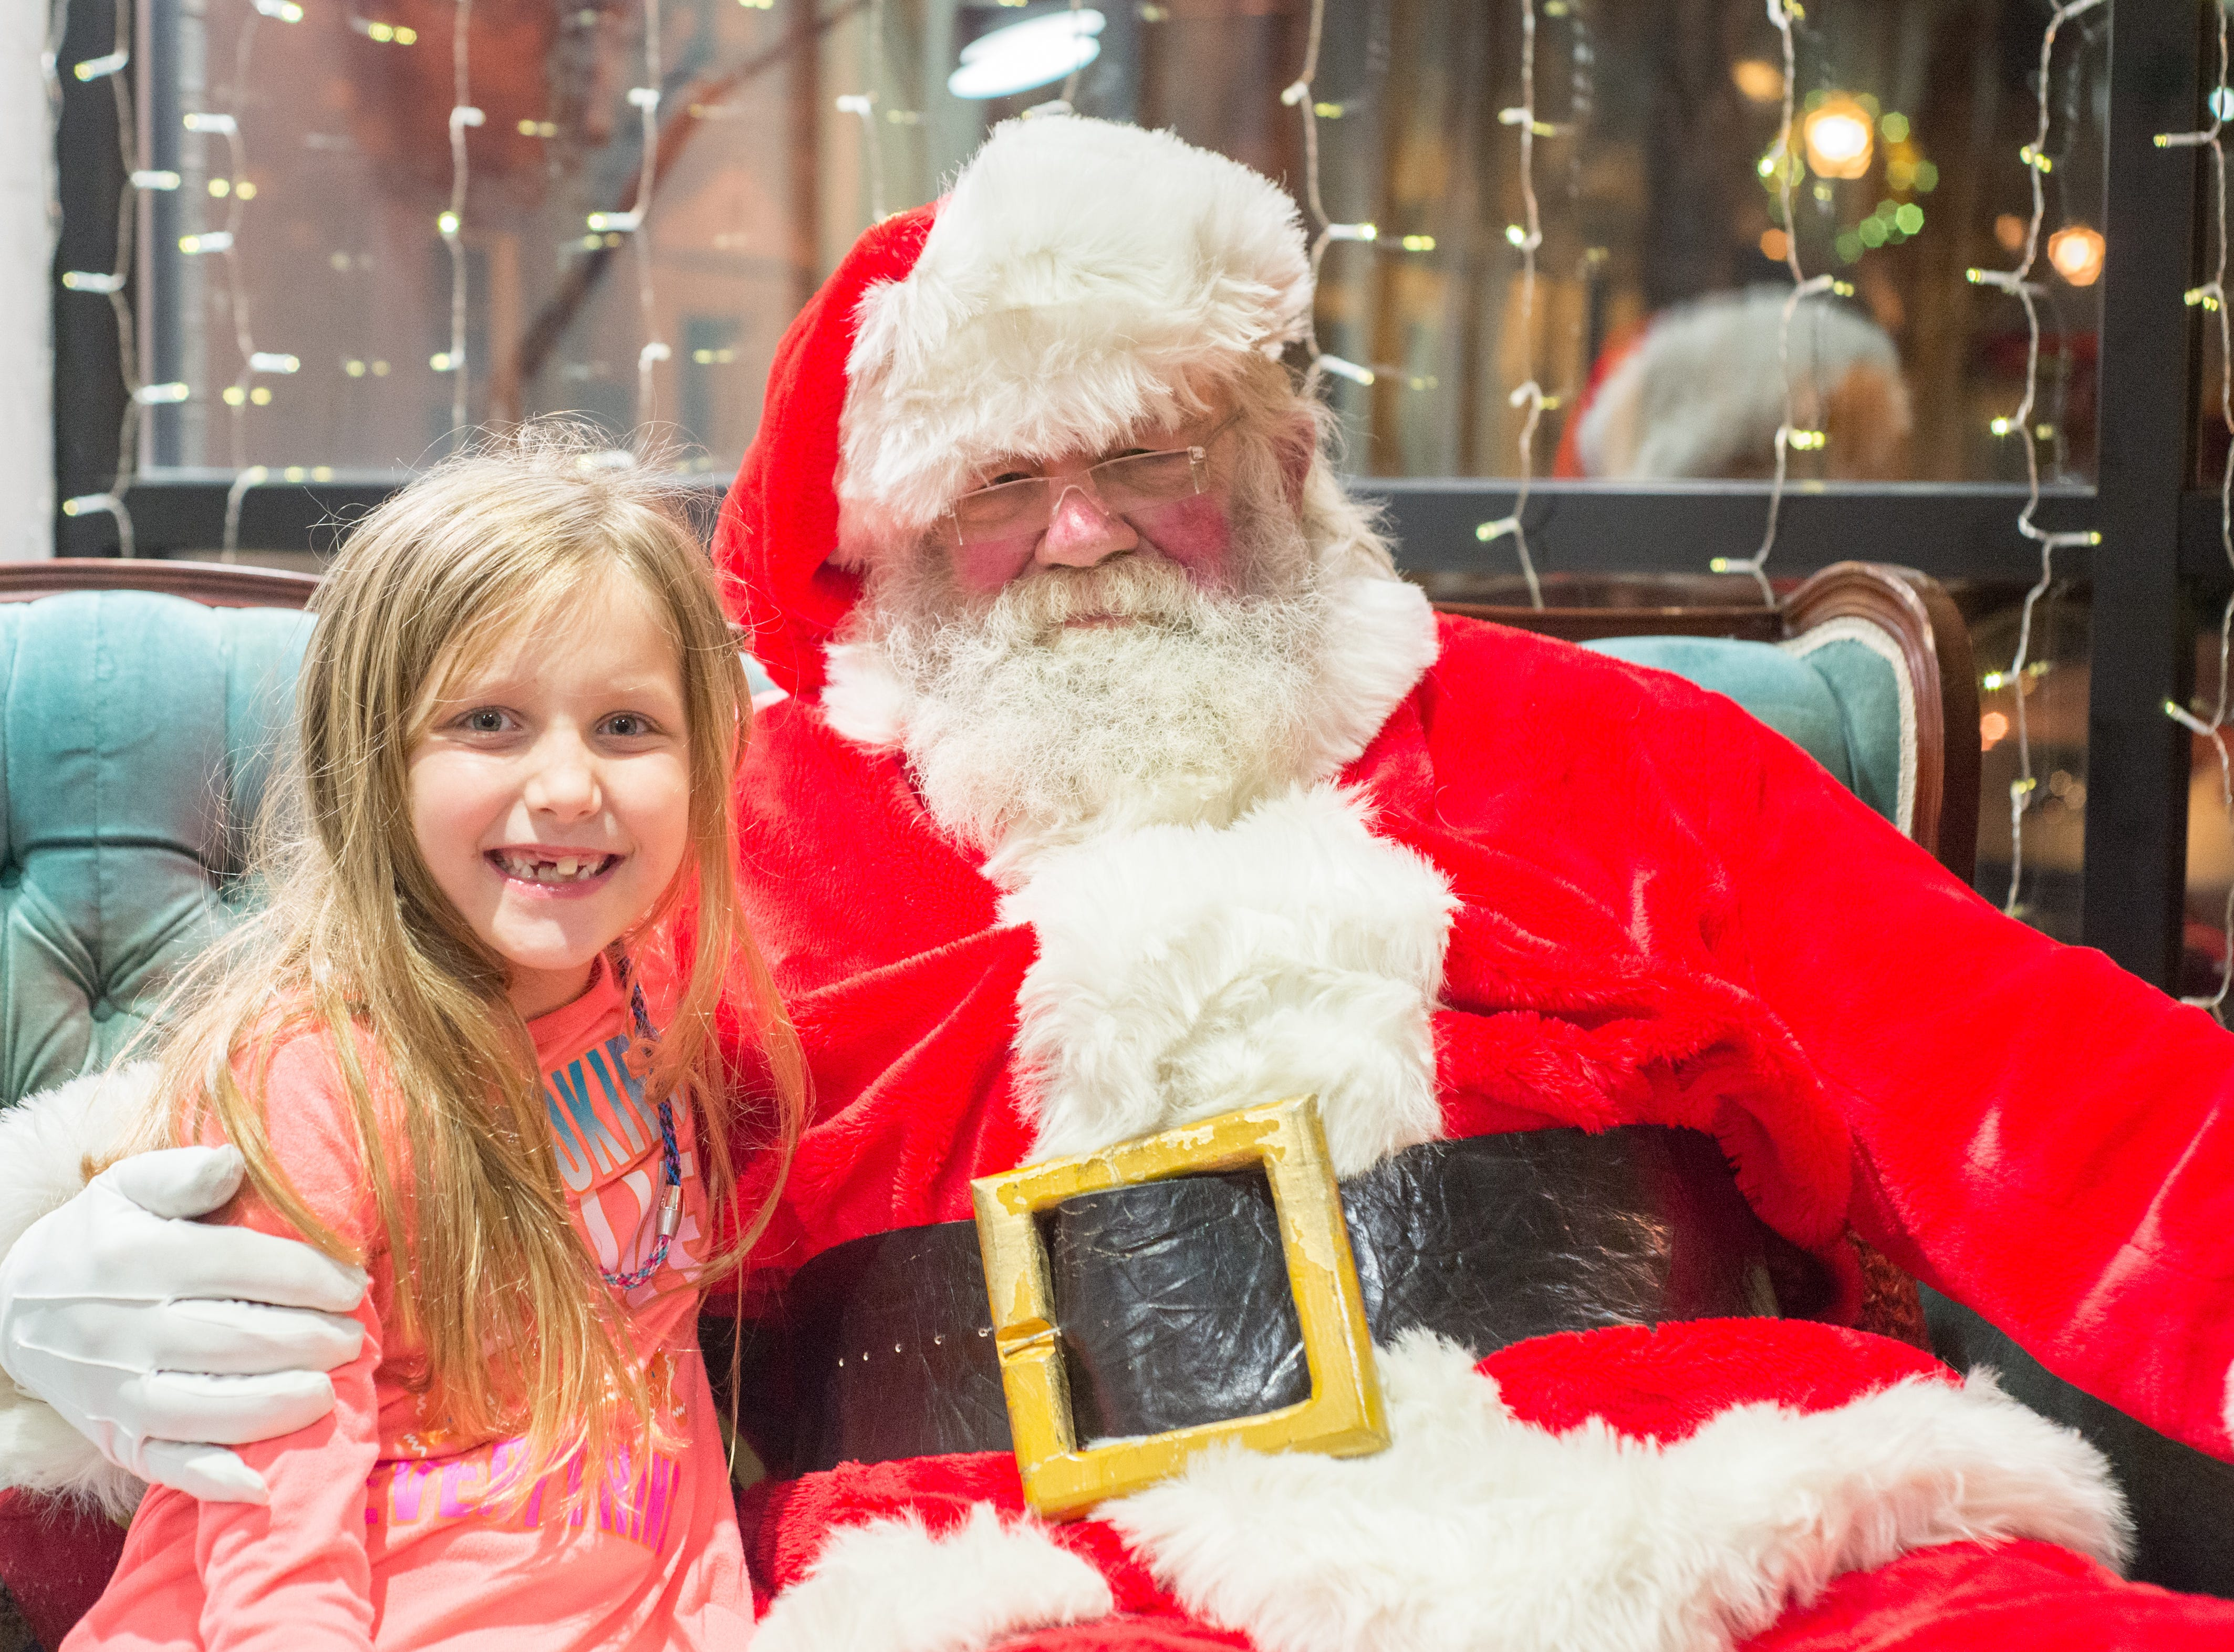 Zoey Johnson chats with Mr. Claus during the Santa on the Square event presented by Historic Downtown Gallatin at 106 Public Square on Saturday, Dec. 22.